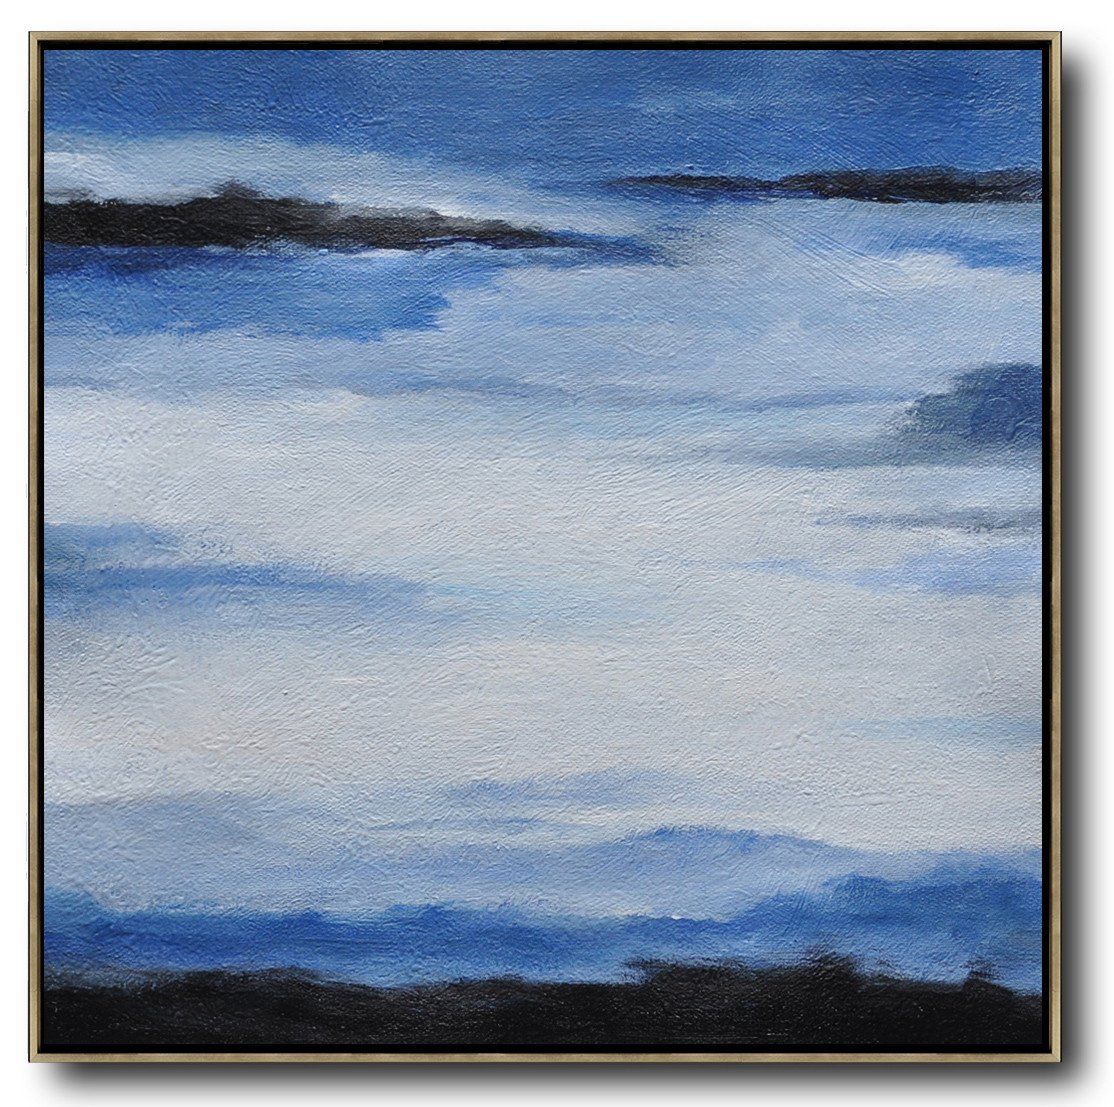 Oversized Canvas Art On Canvas,Oversized Abstract Landscape Painting,Large Contemporary Art Canvas Painting,Black,Blue,White.etc